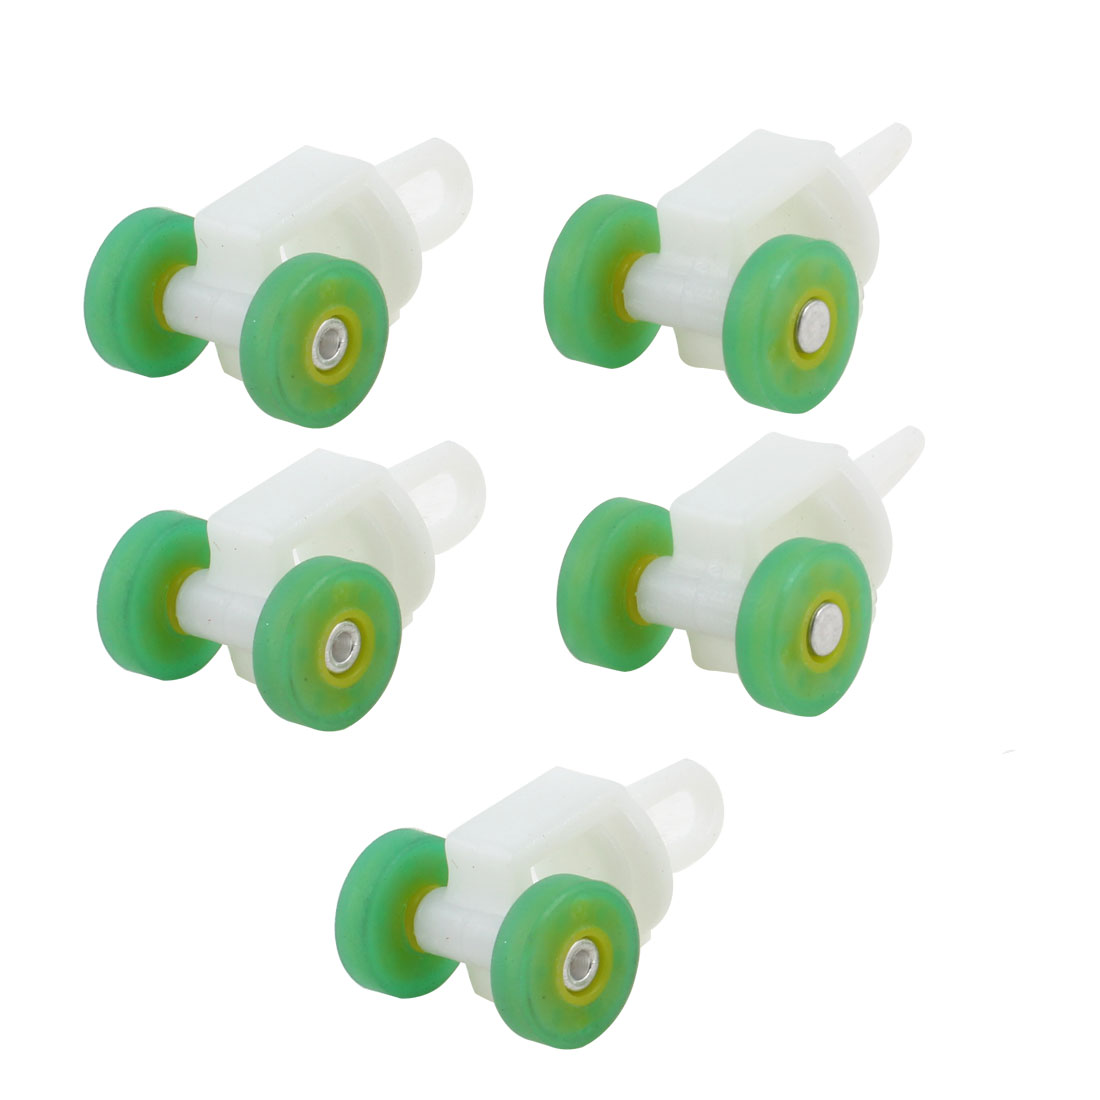 "5 Pcs 0.47"" Diameter Green Yellow Wheels White Plastic Curtain Track Rollers"